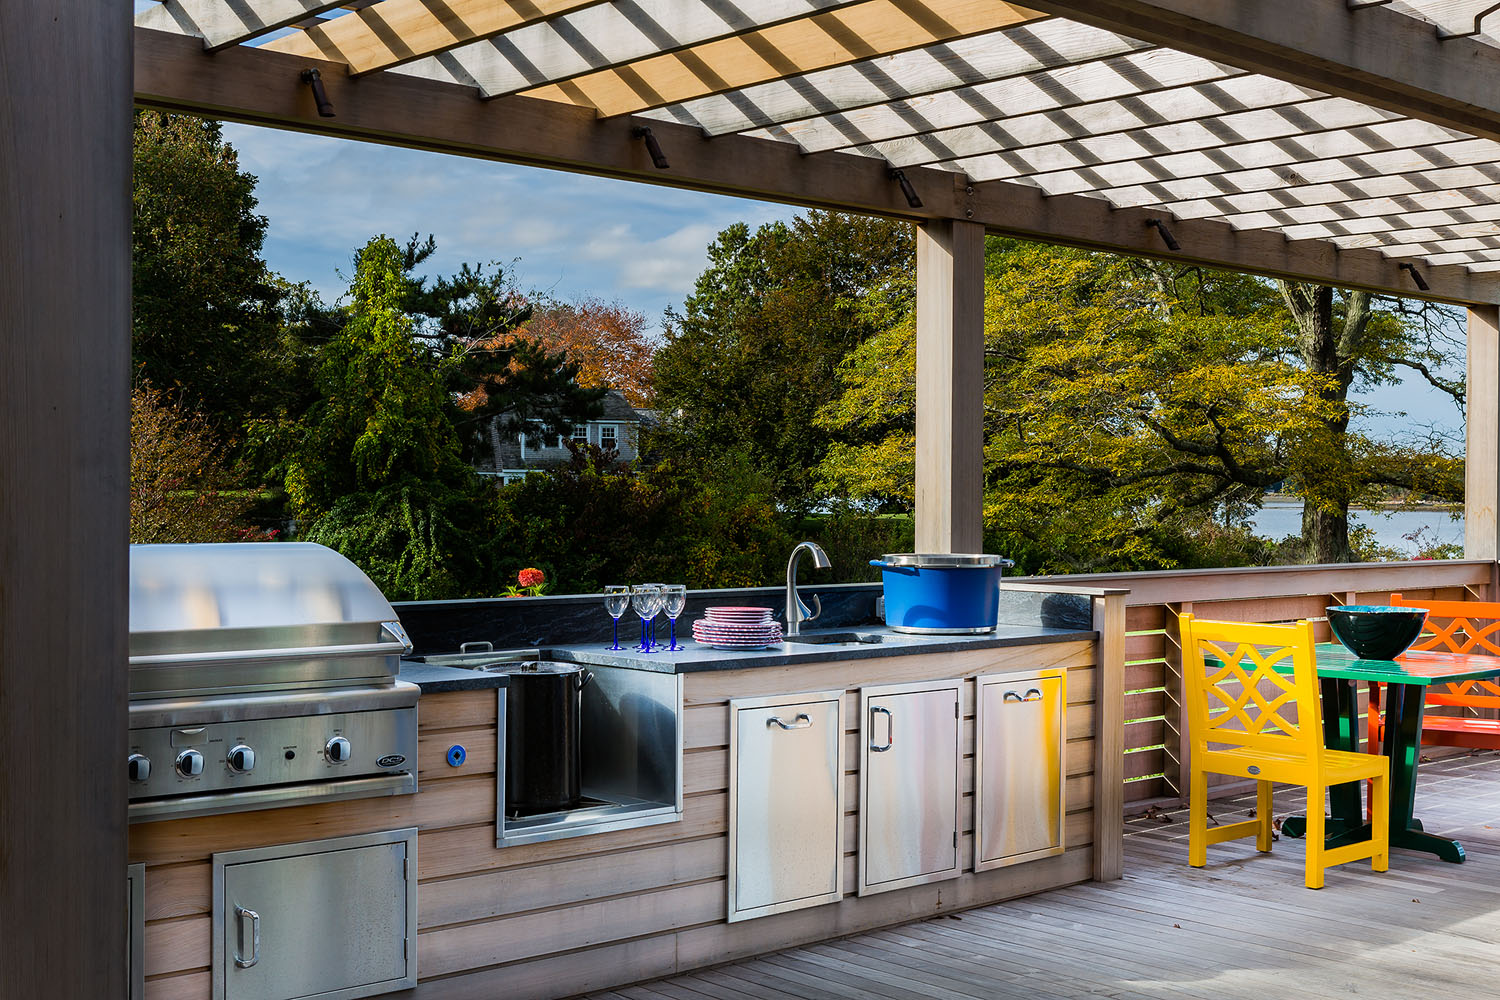 Living outdoors i easy in this space designed by Boston interior designer Elizabeth Swartz Interiors includes a complete kitchen .